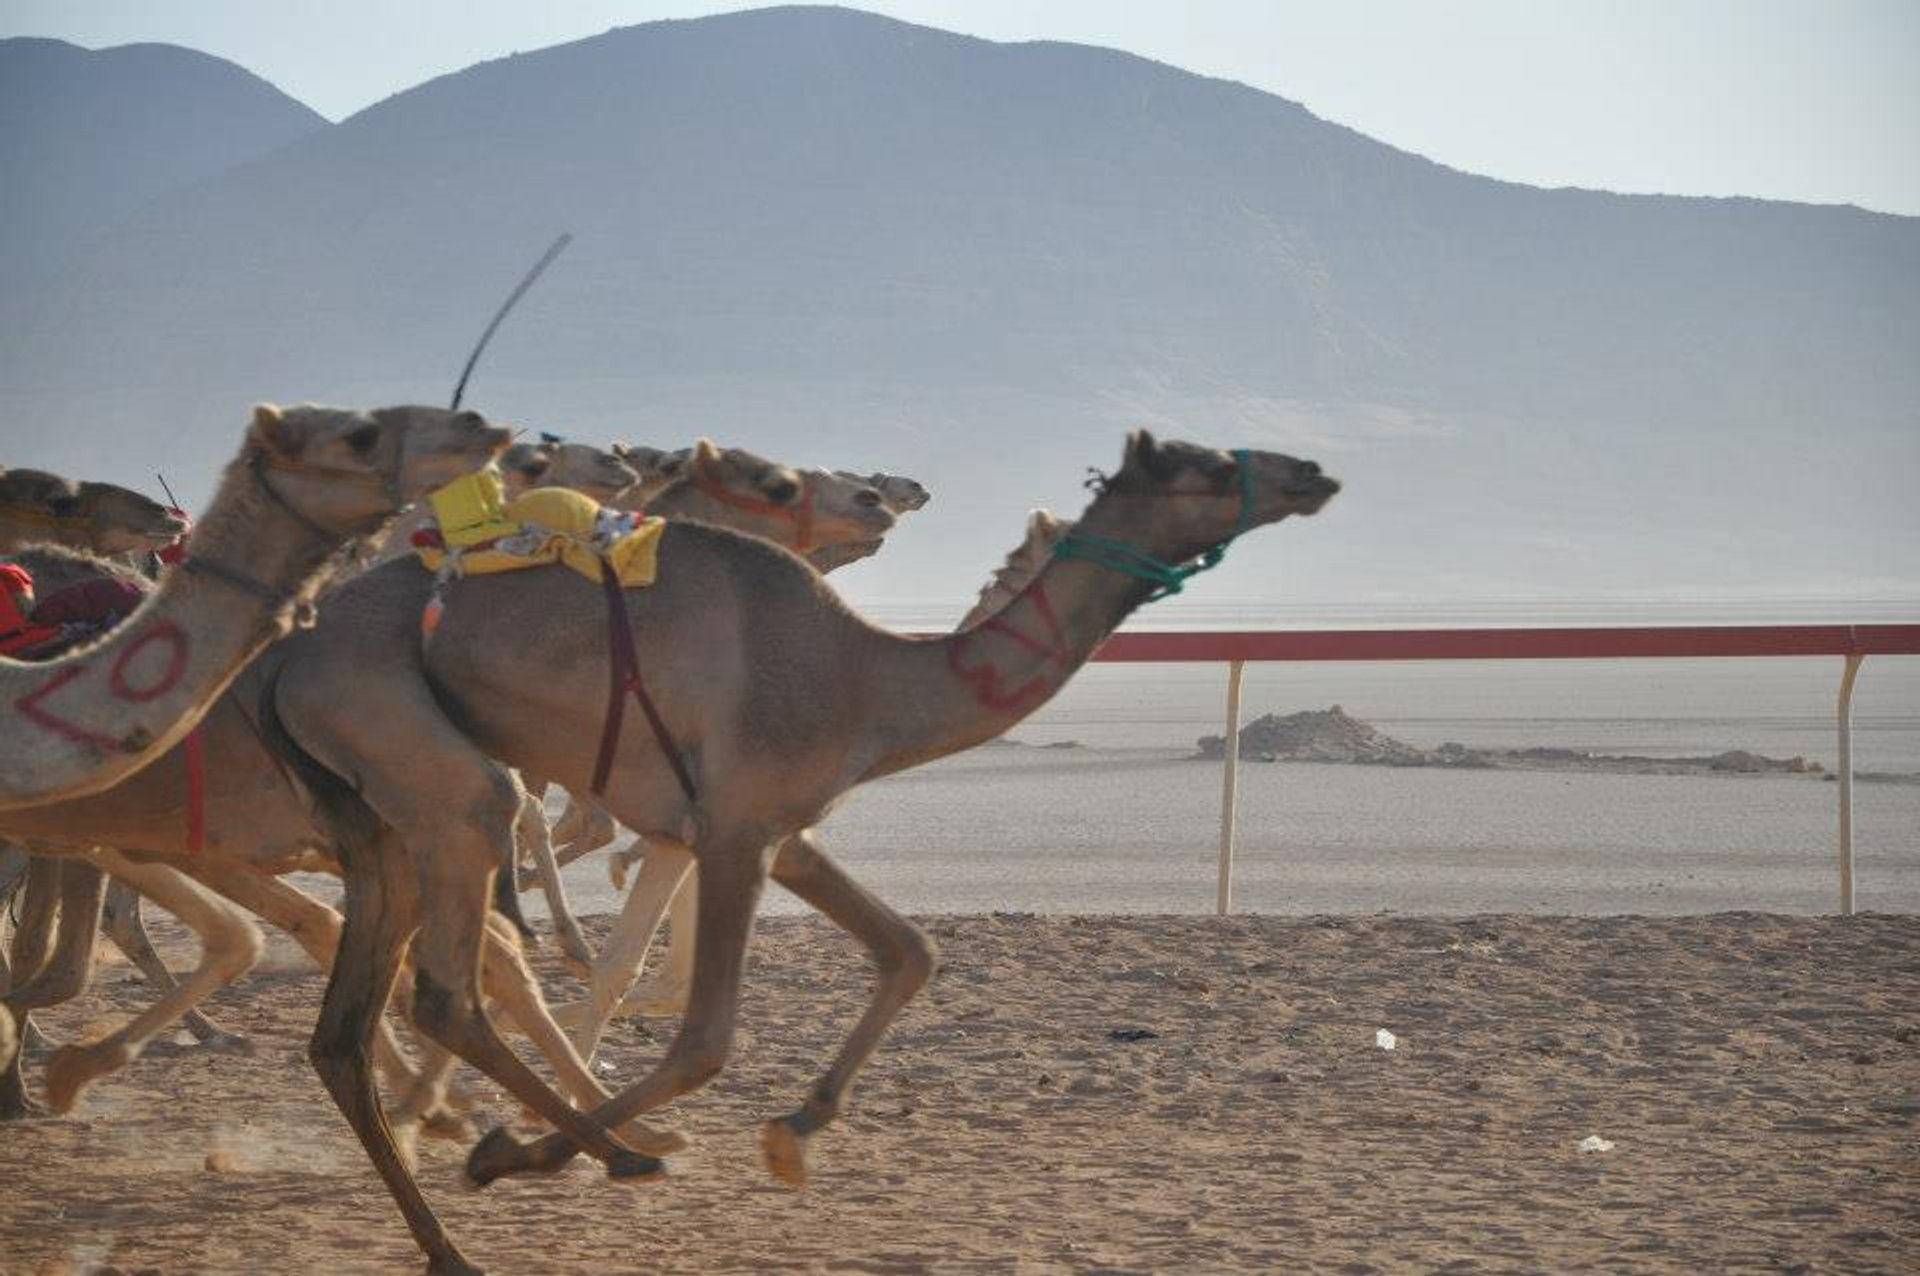 Camel Races in Jordan 2019 - Best Time